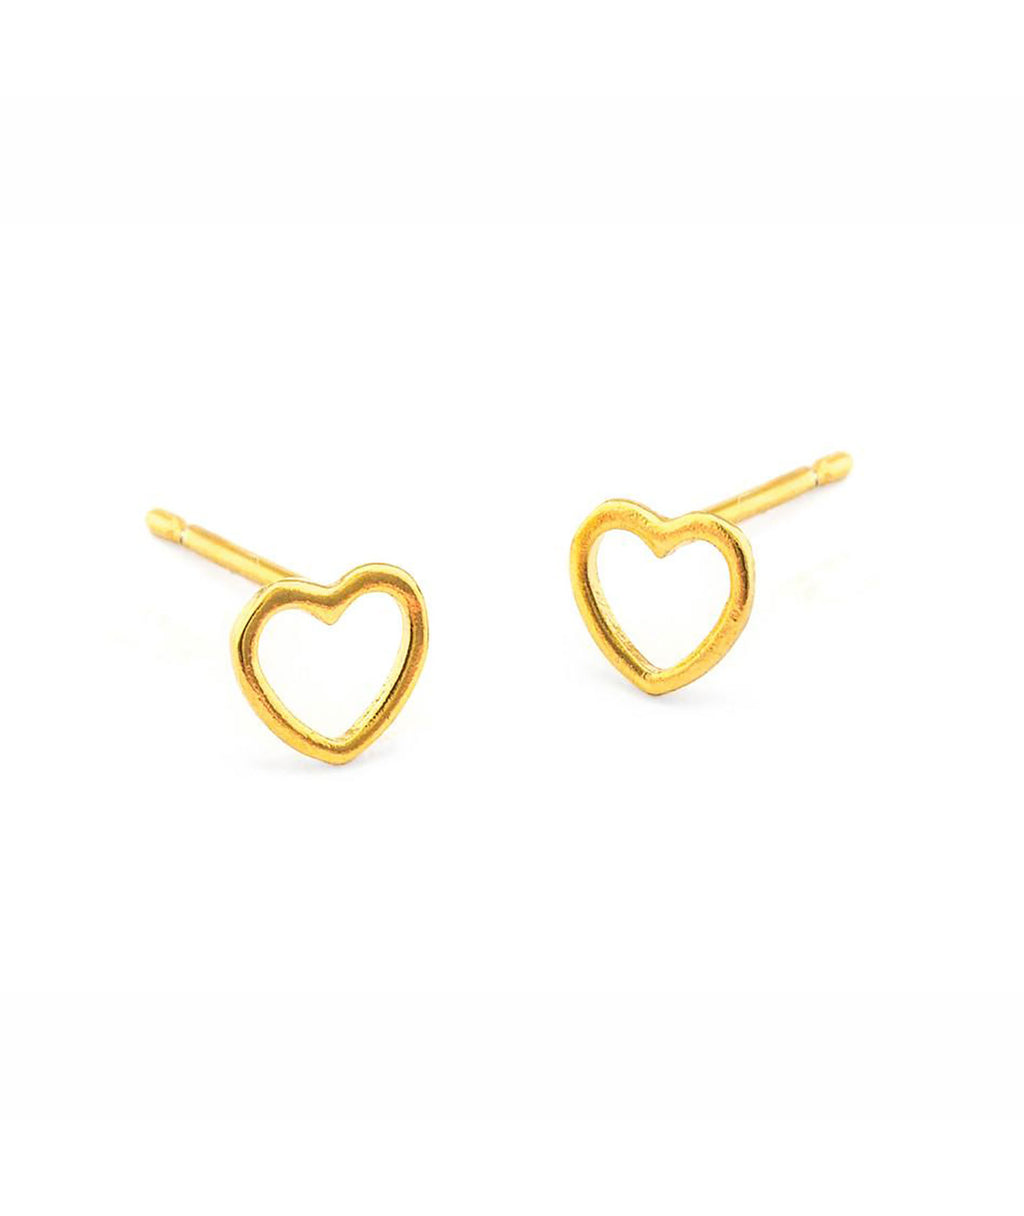 TAI Gold Open Heart Stud Post Earrings - Frankie's on the Park